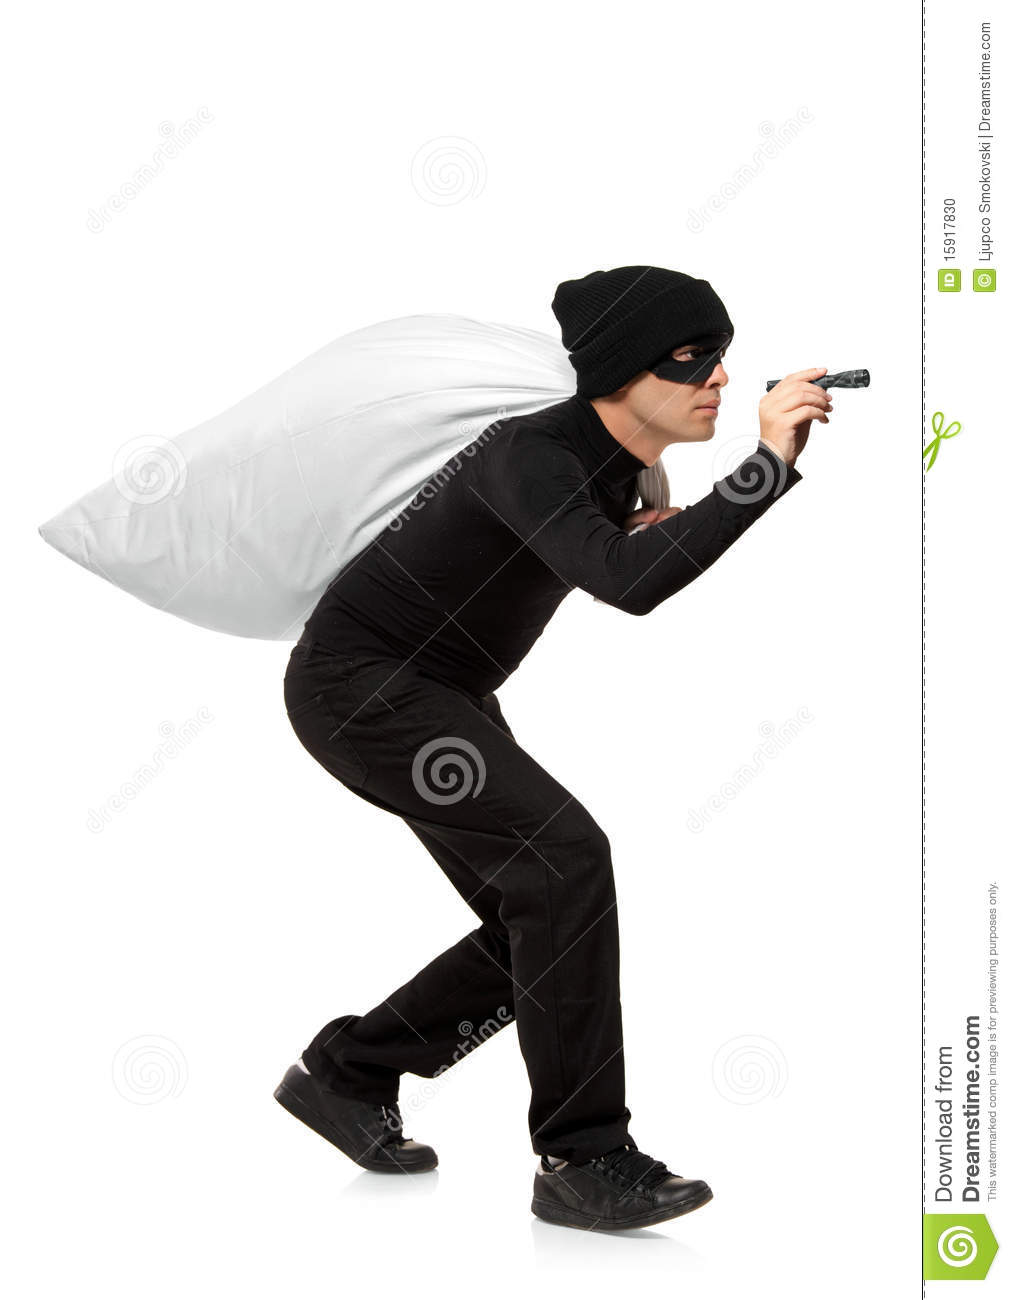 Thief Carrying A Bag And Holding A Torch Stock Photo - Image: 15917830